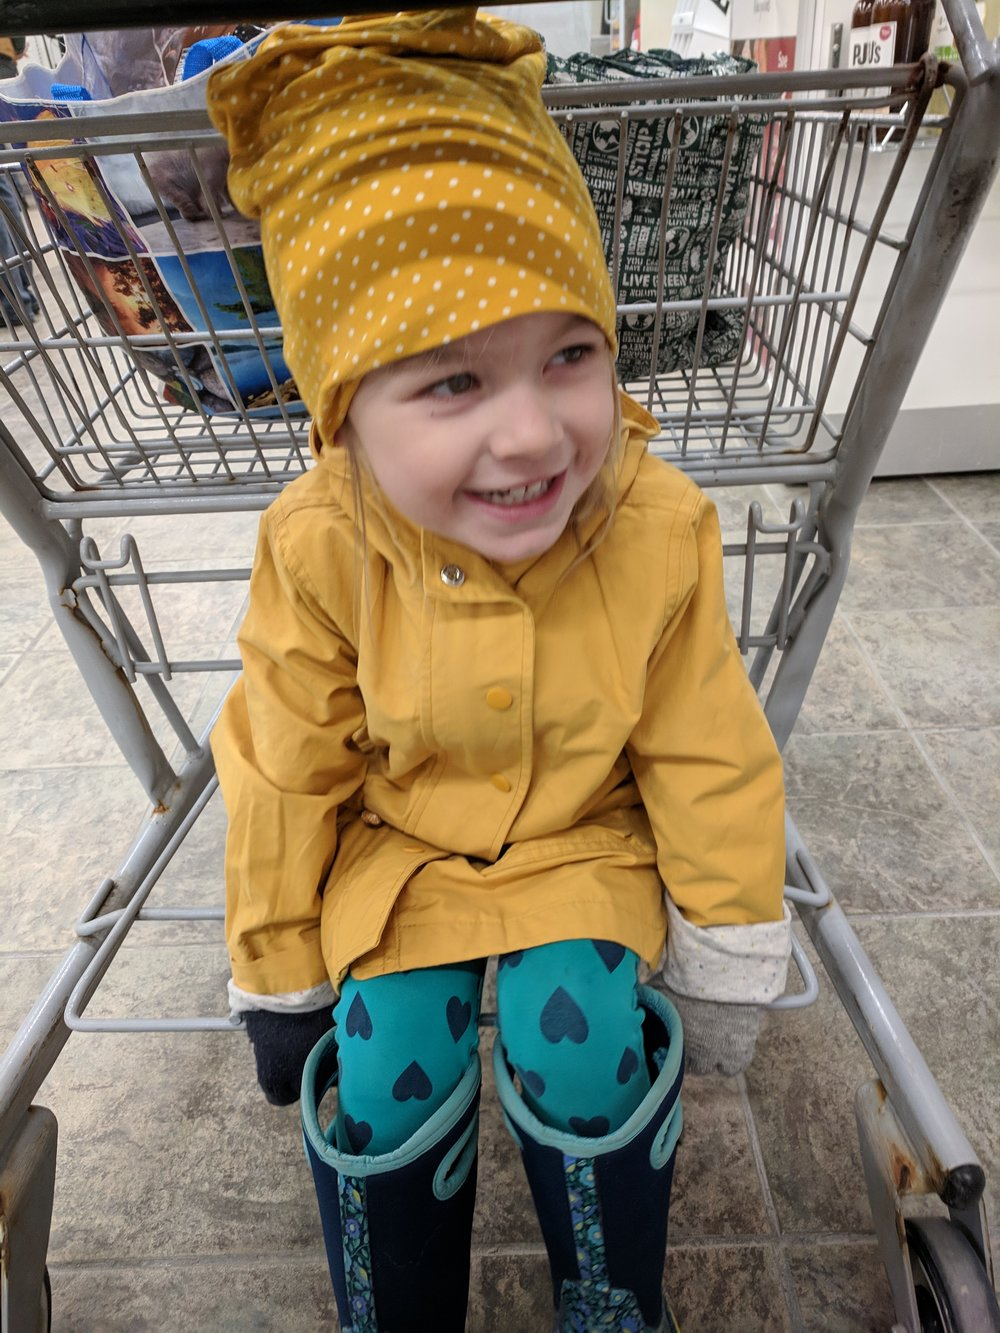 Note: In addition to coffee, scones, and YouTube, there is one additional treatment for The Late Winter Blues. It is a preschooler sitting in a shopping cart wearing sunshine yellow for days and floral boots. You're welcome.